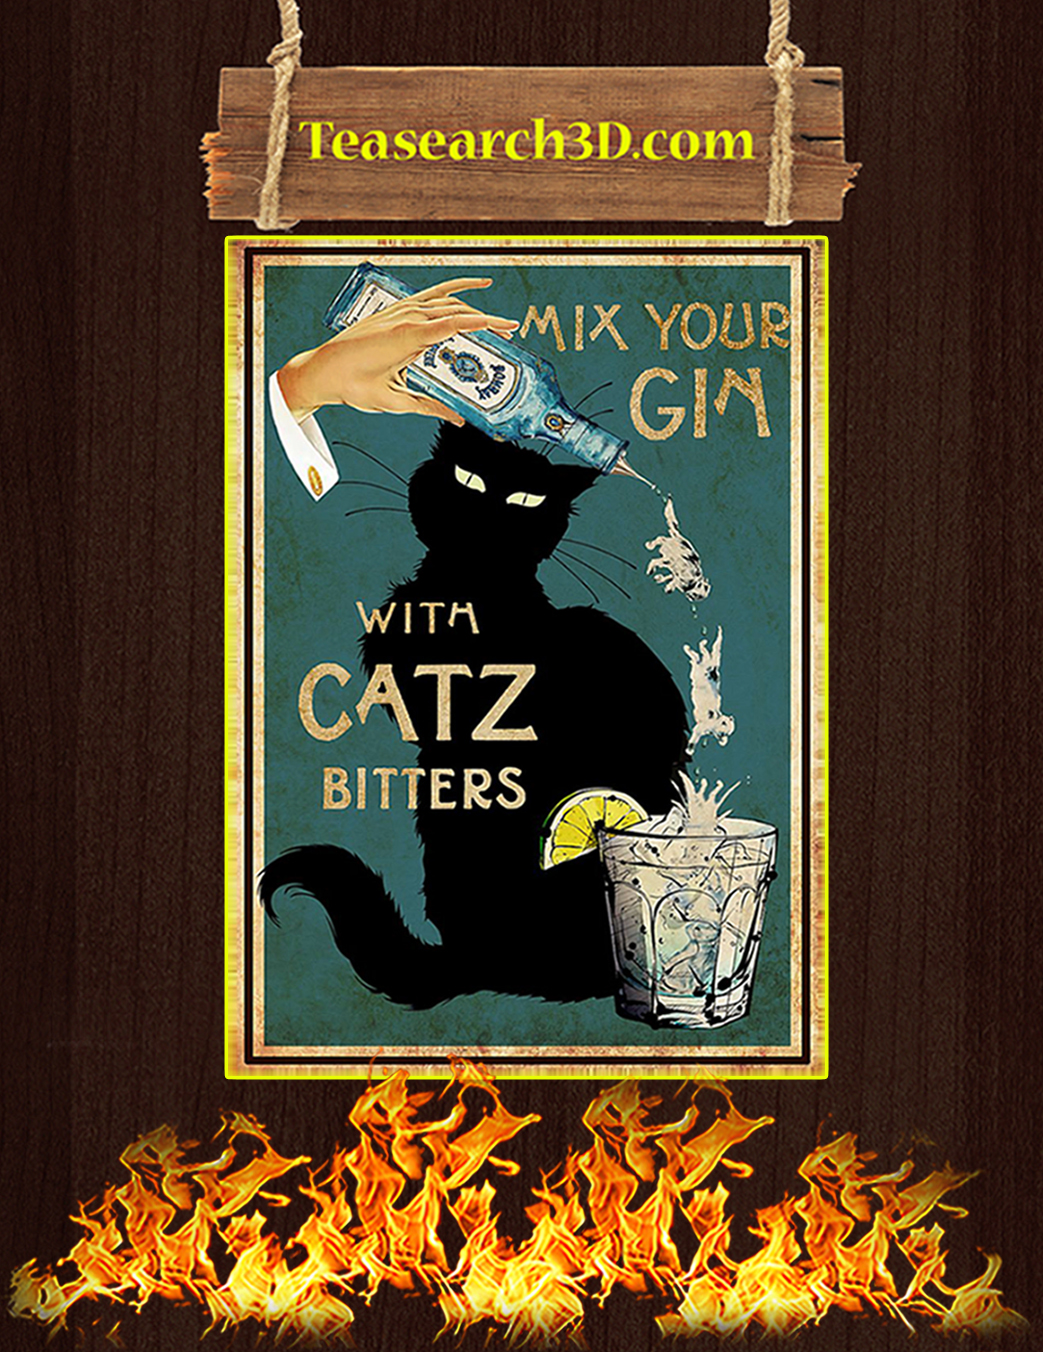 Liquor Mix your gin with catz bitters poster A1